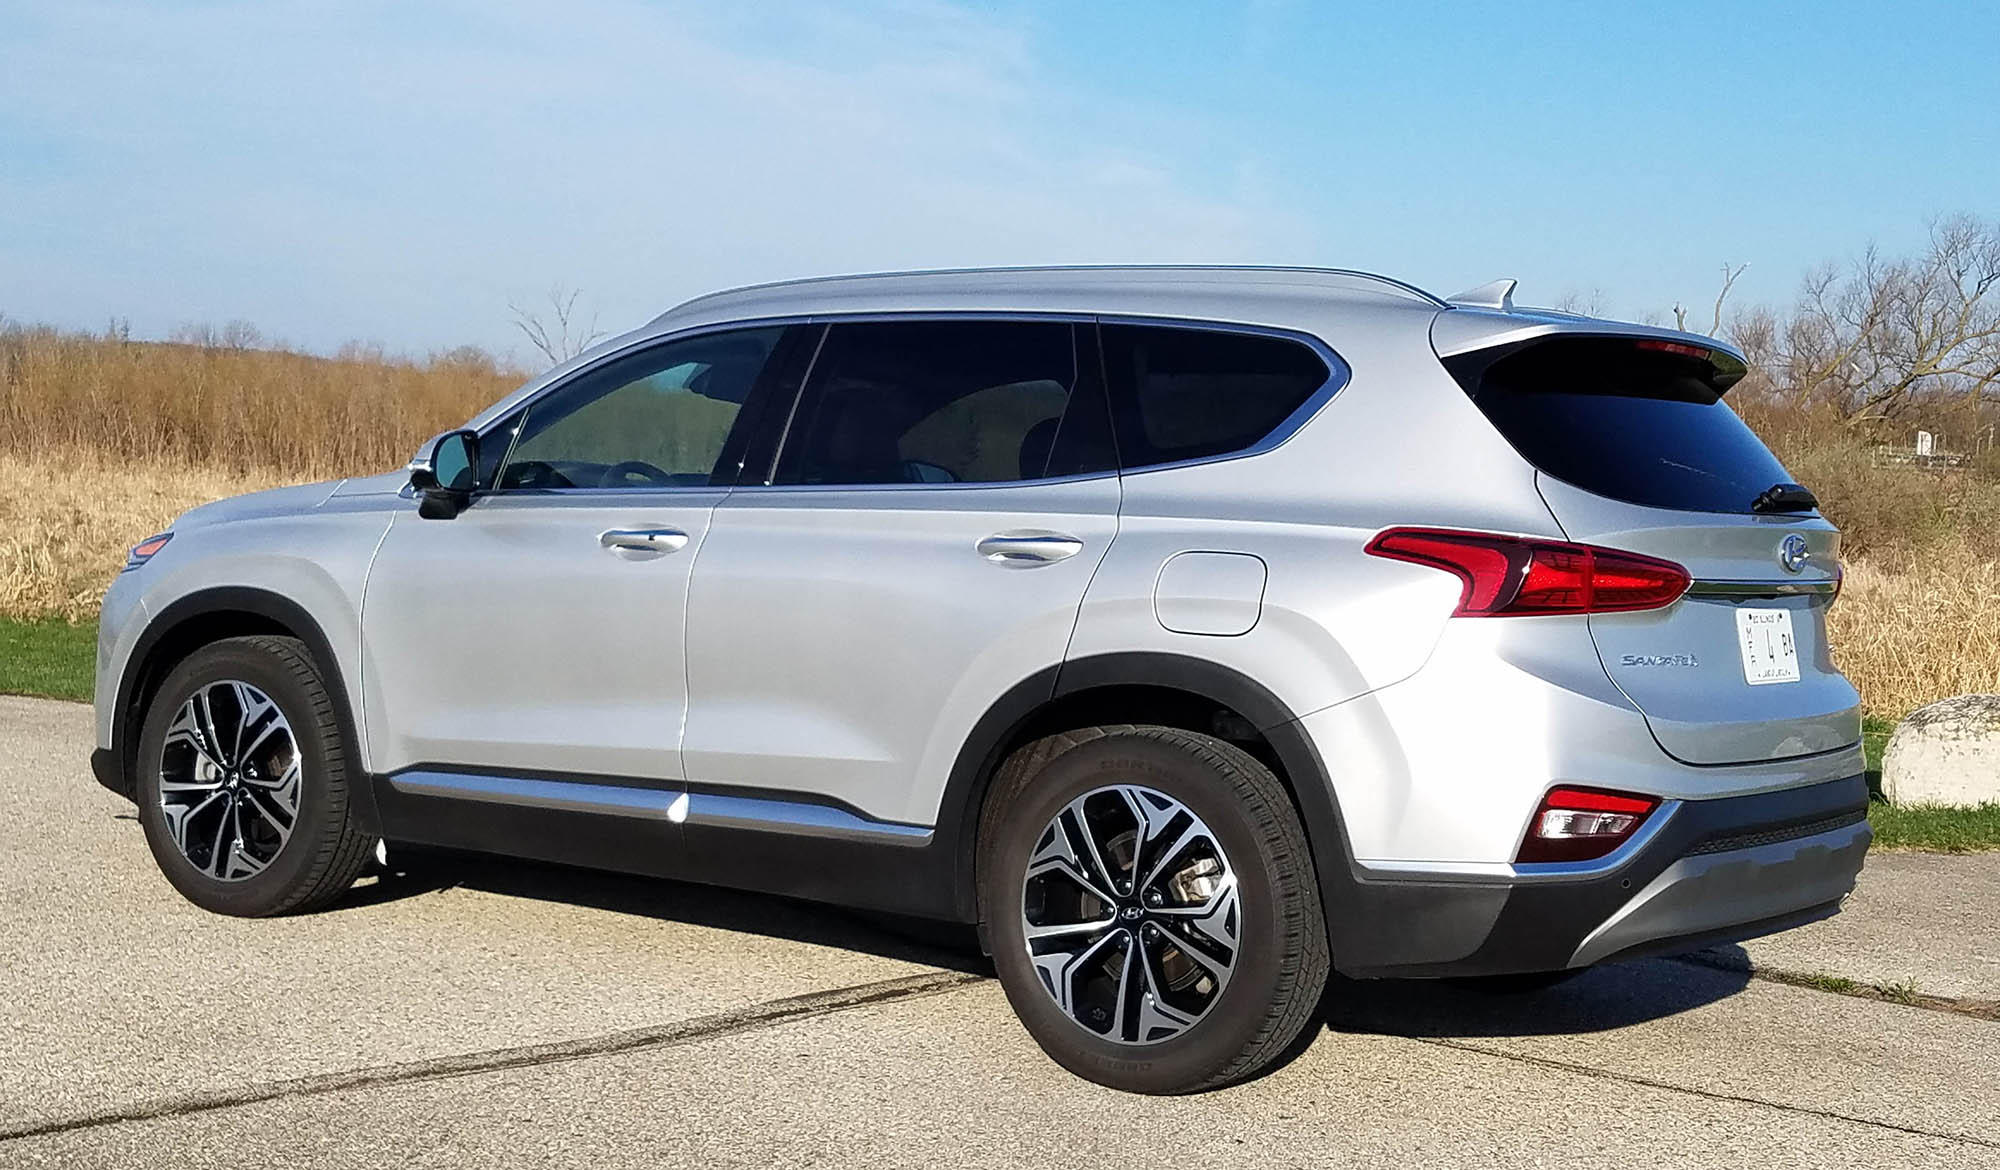 2019 Hyundai Santa Fe Ultimate 2 0t Fwd Review Wuwm